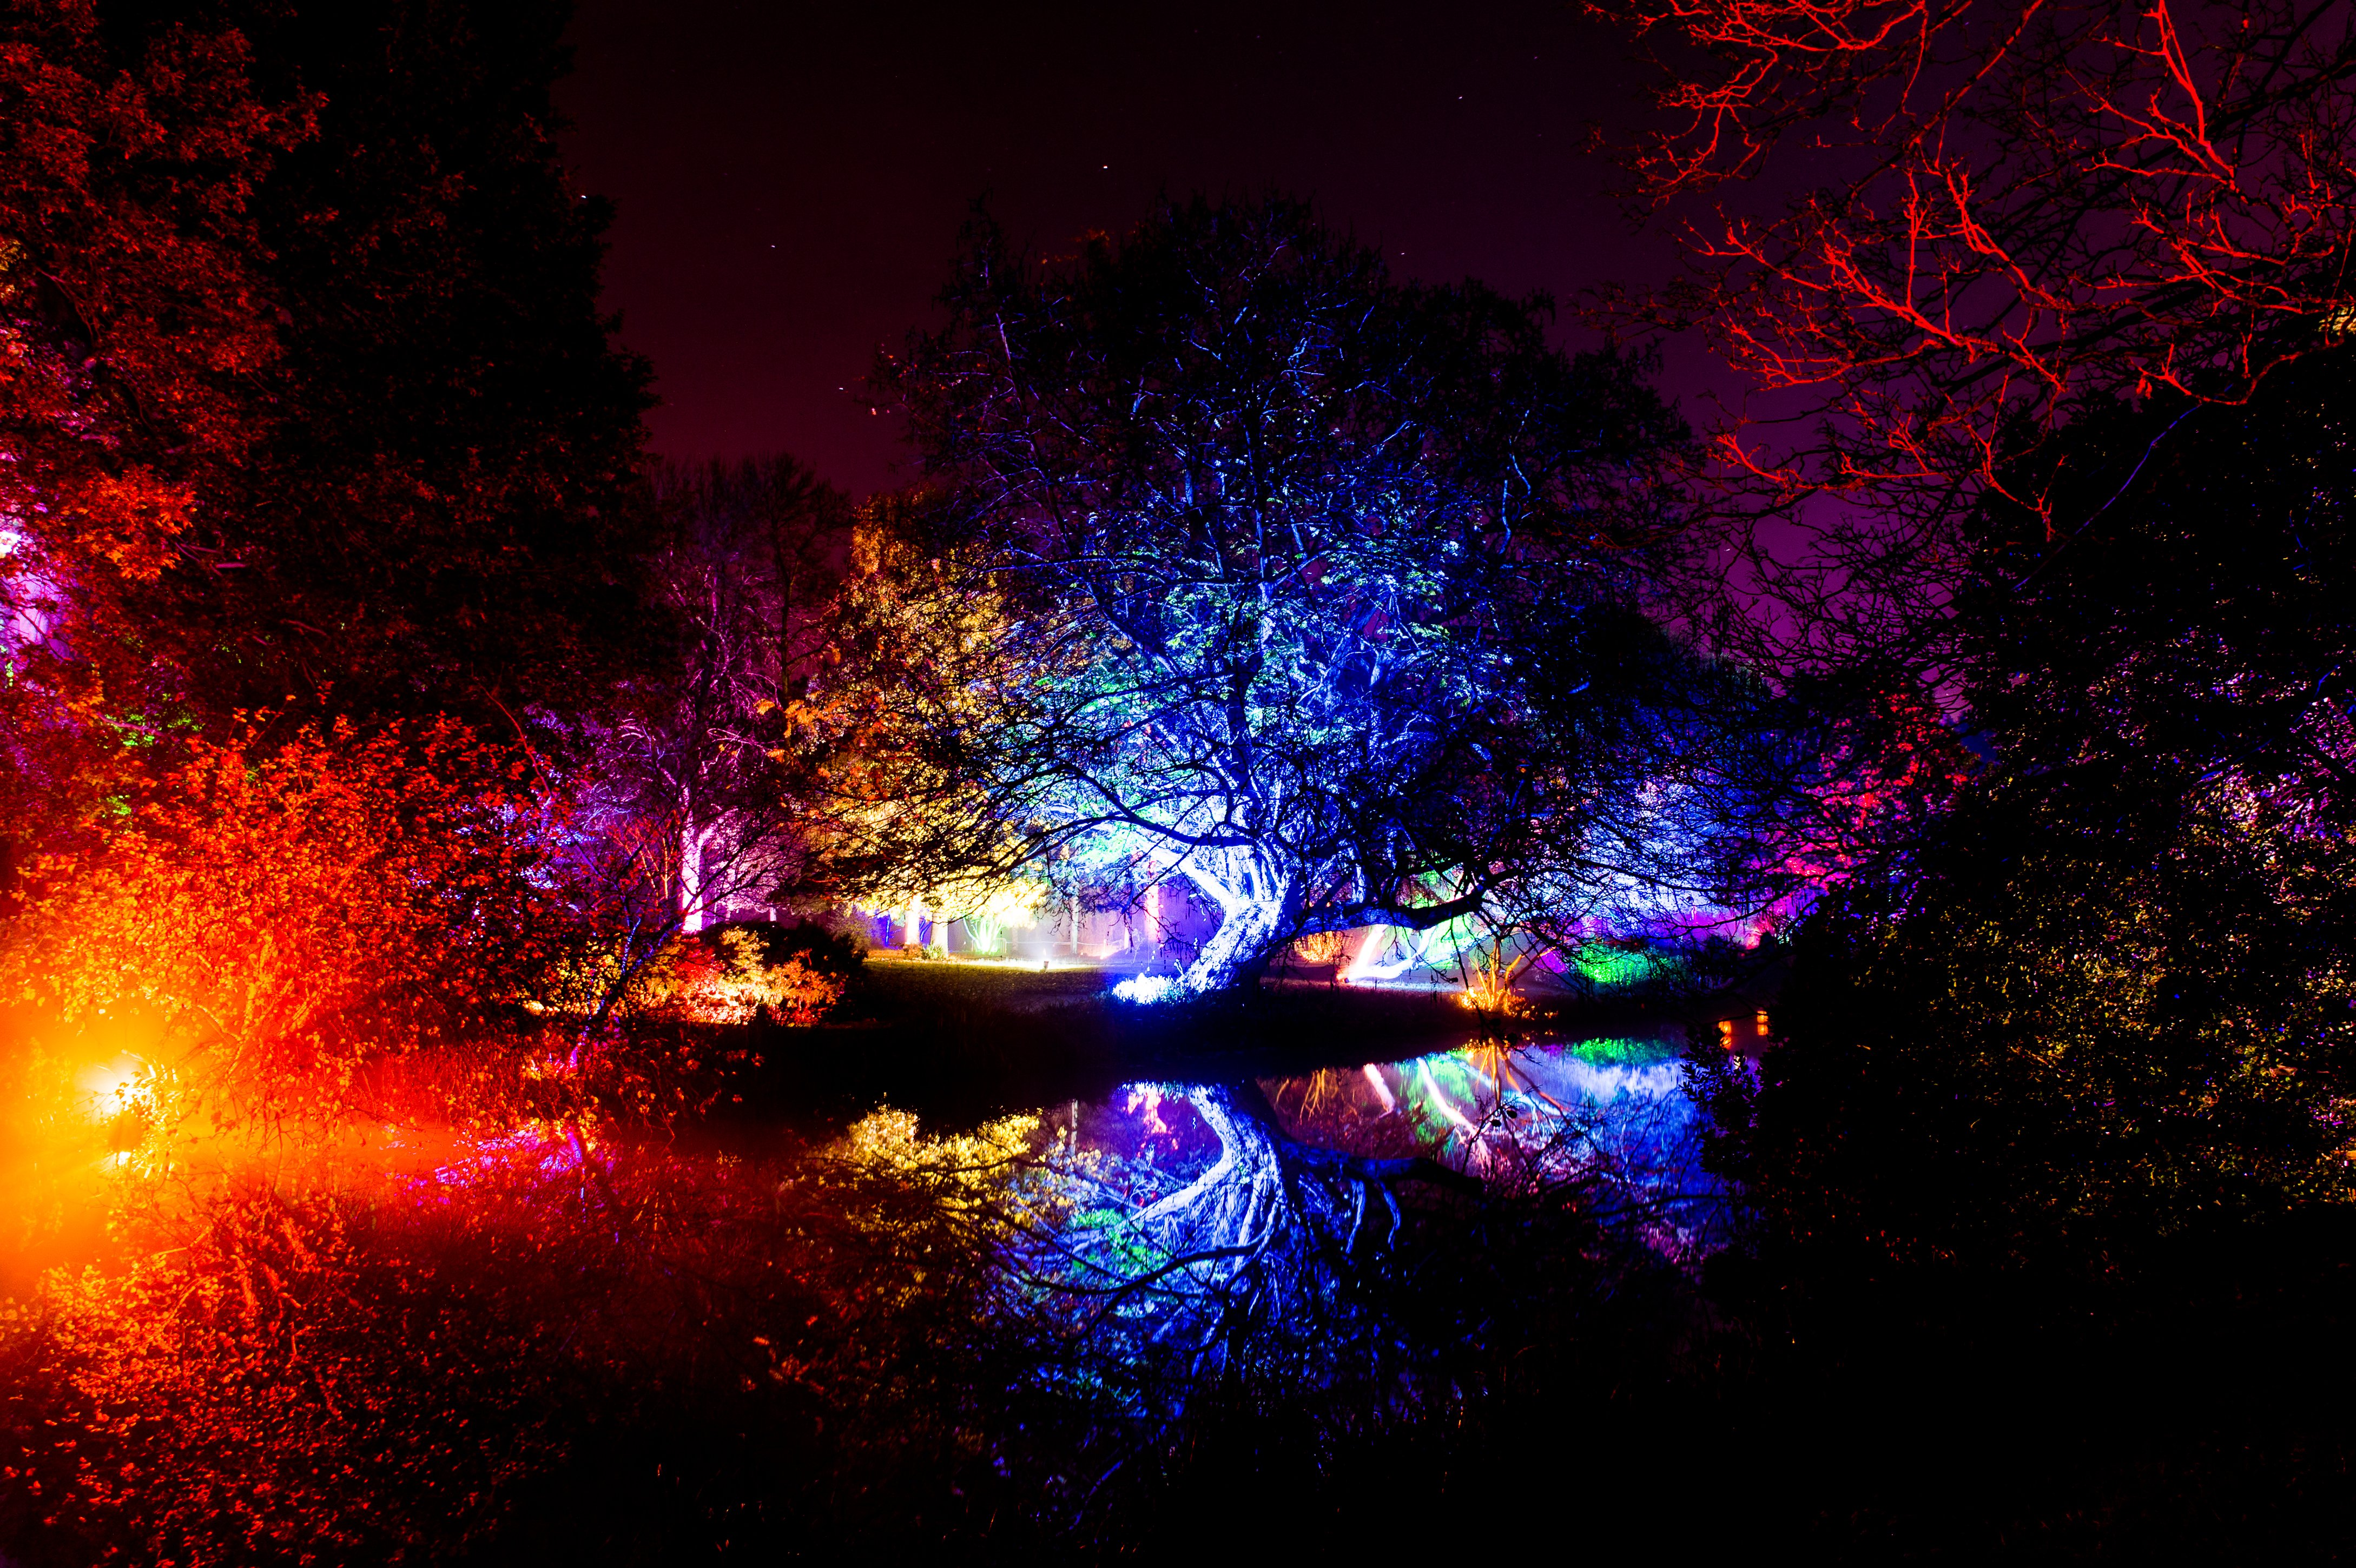 Trees lit up in a woodland